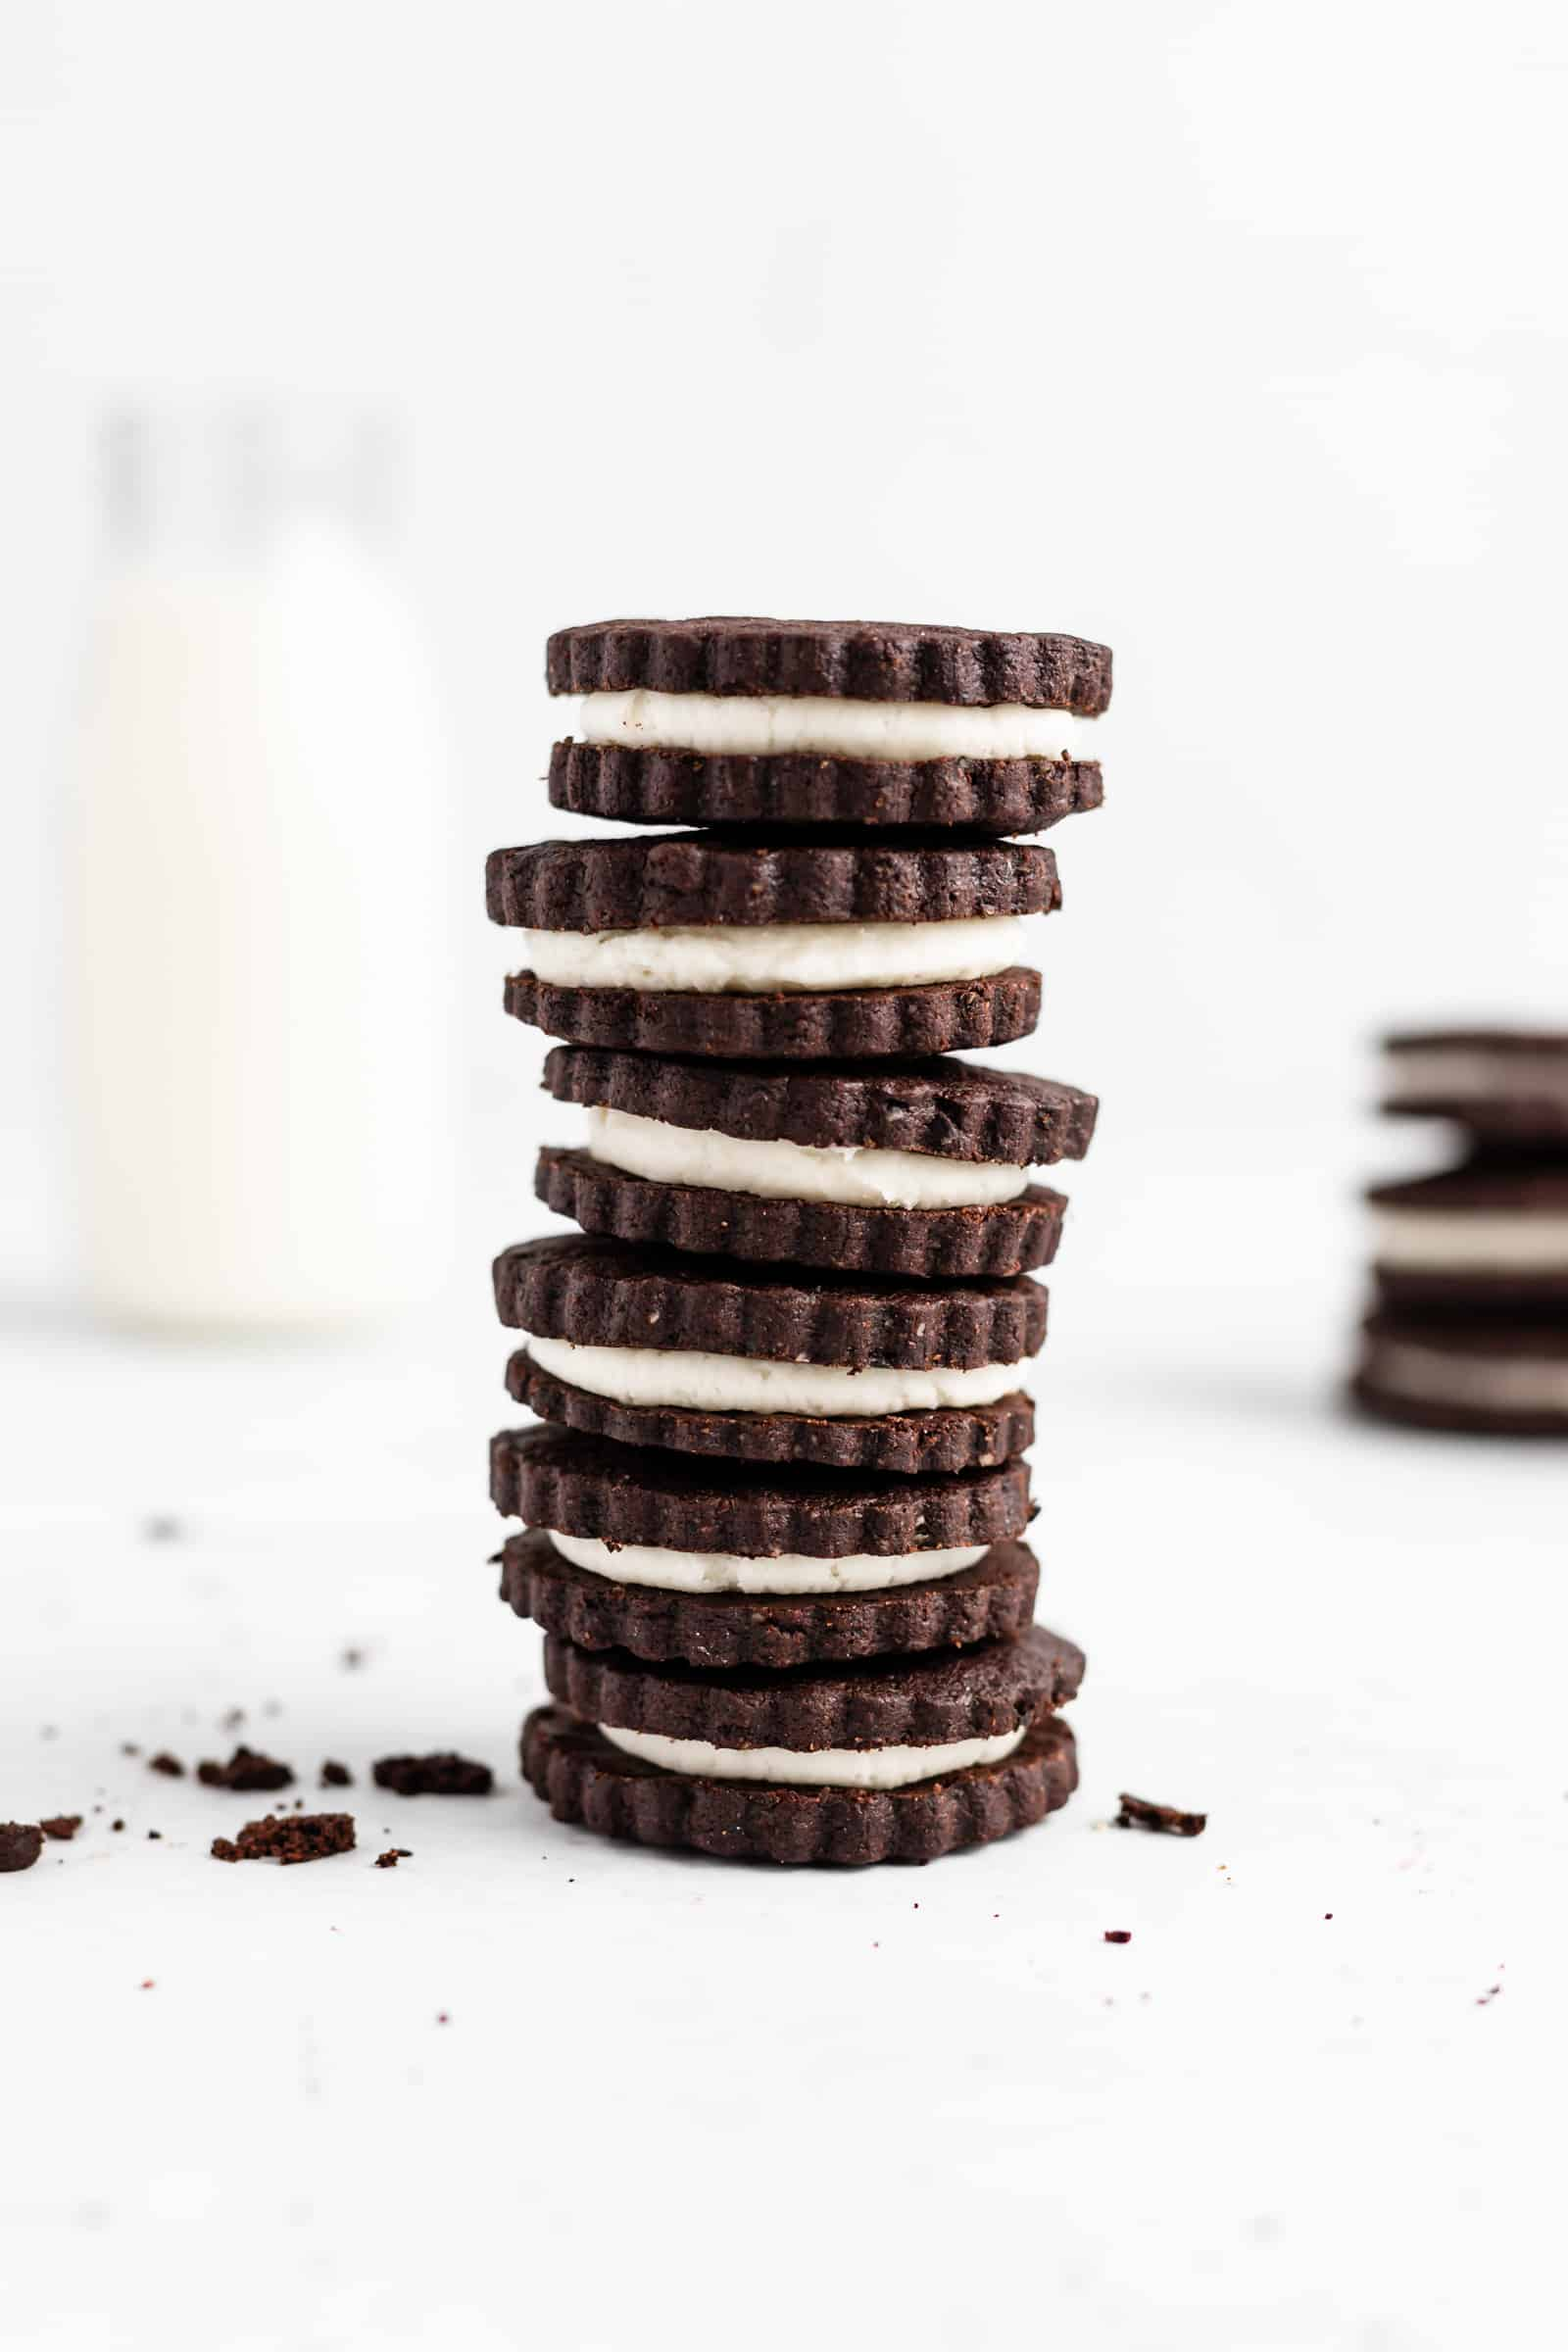 Homemade Oreo Cookies (Cream Filled Chocolate Sandwich Cookies)